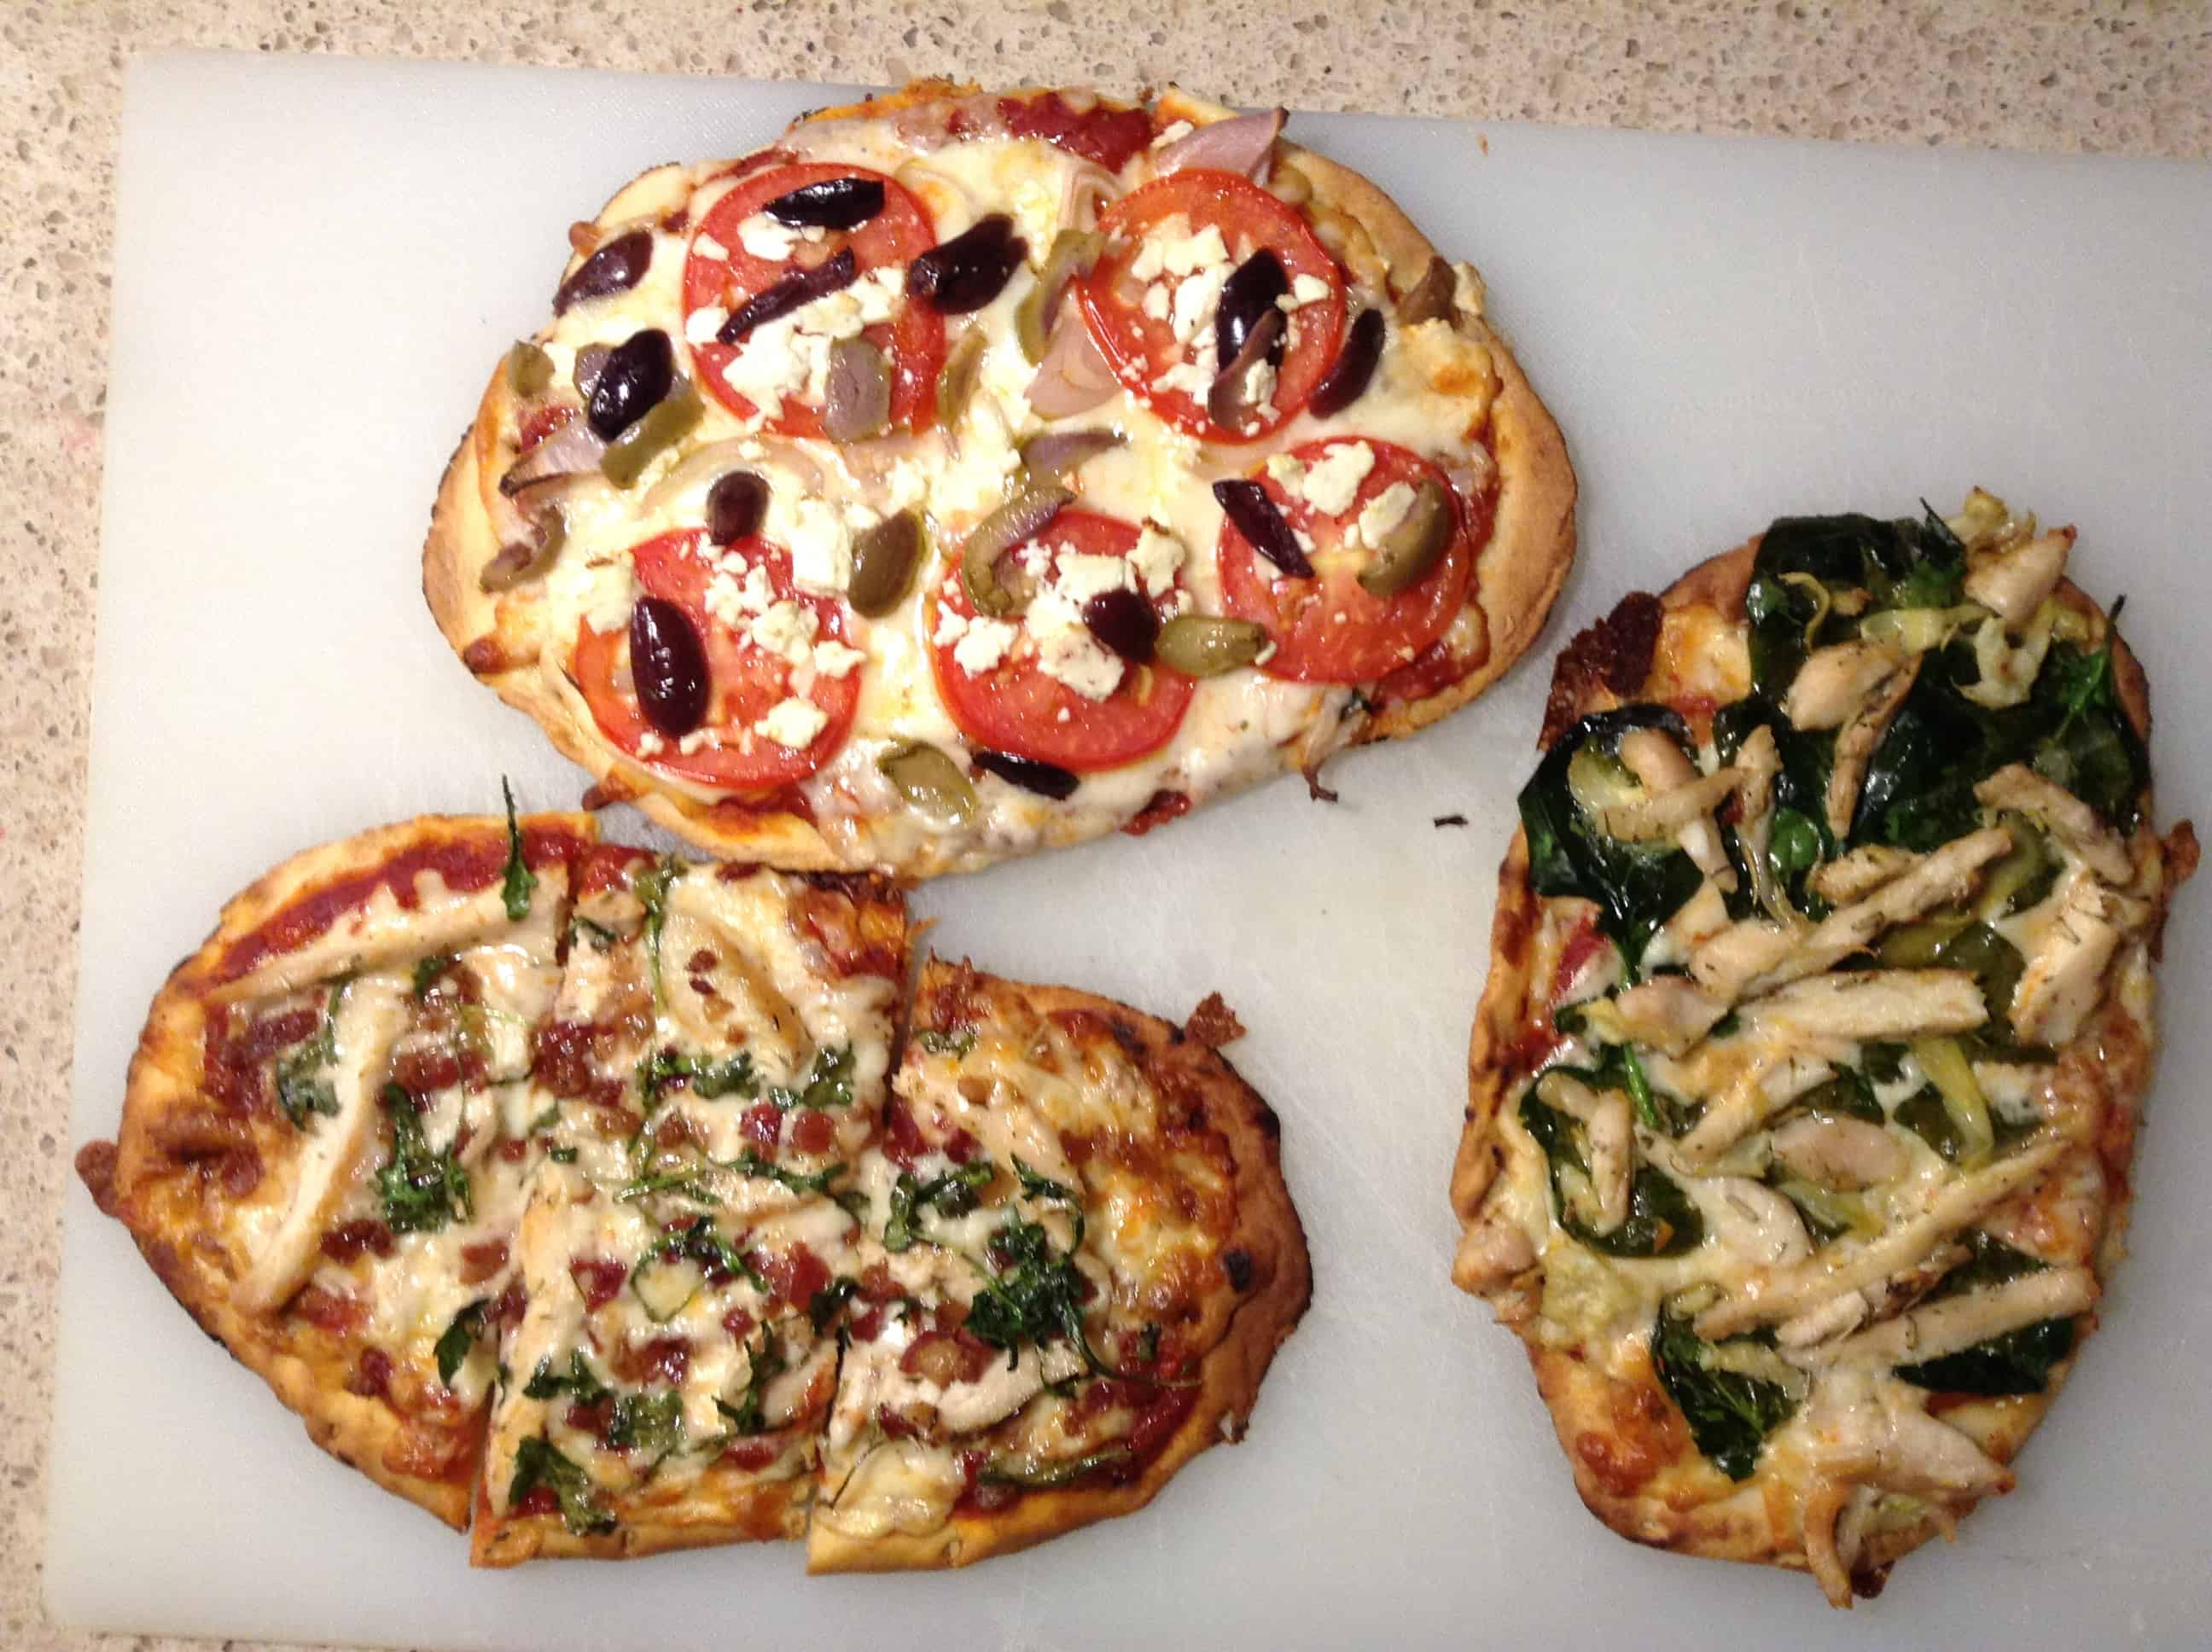 (L) chicken, bacon, arugula (T) feta, tomato, olive, onion (R) chicken, spinach, artichoke